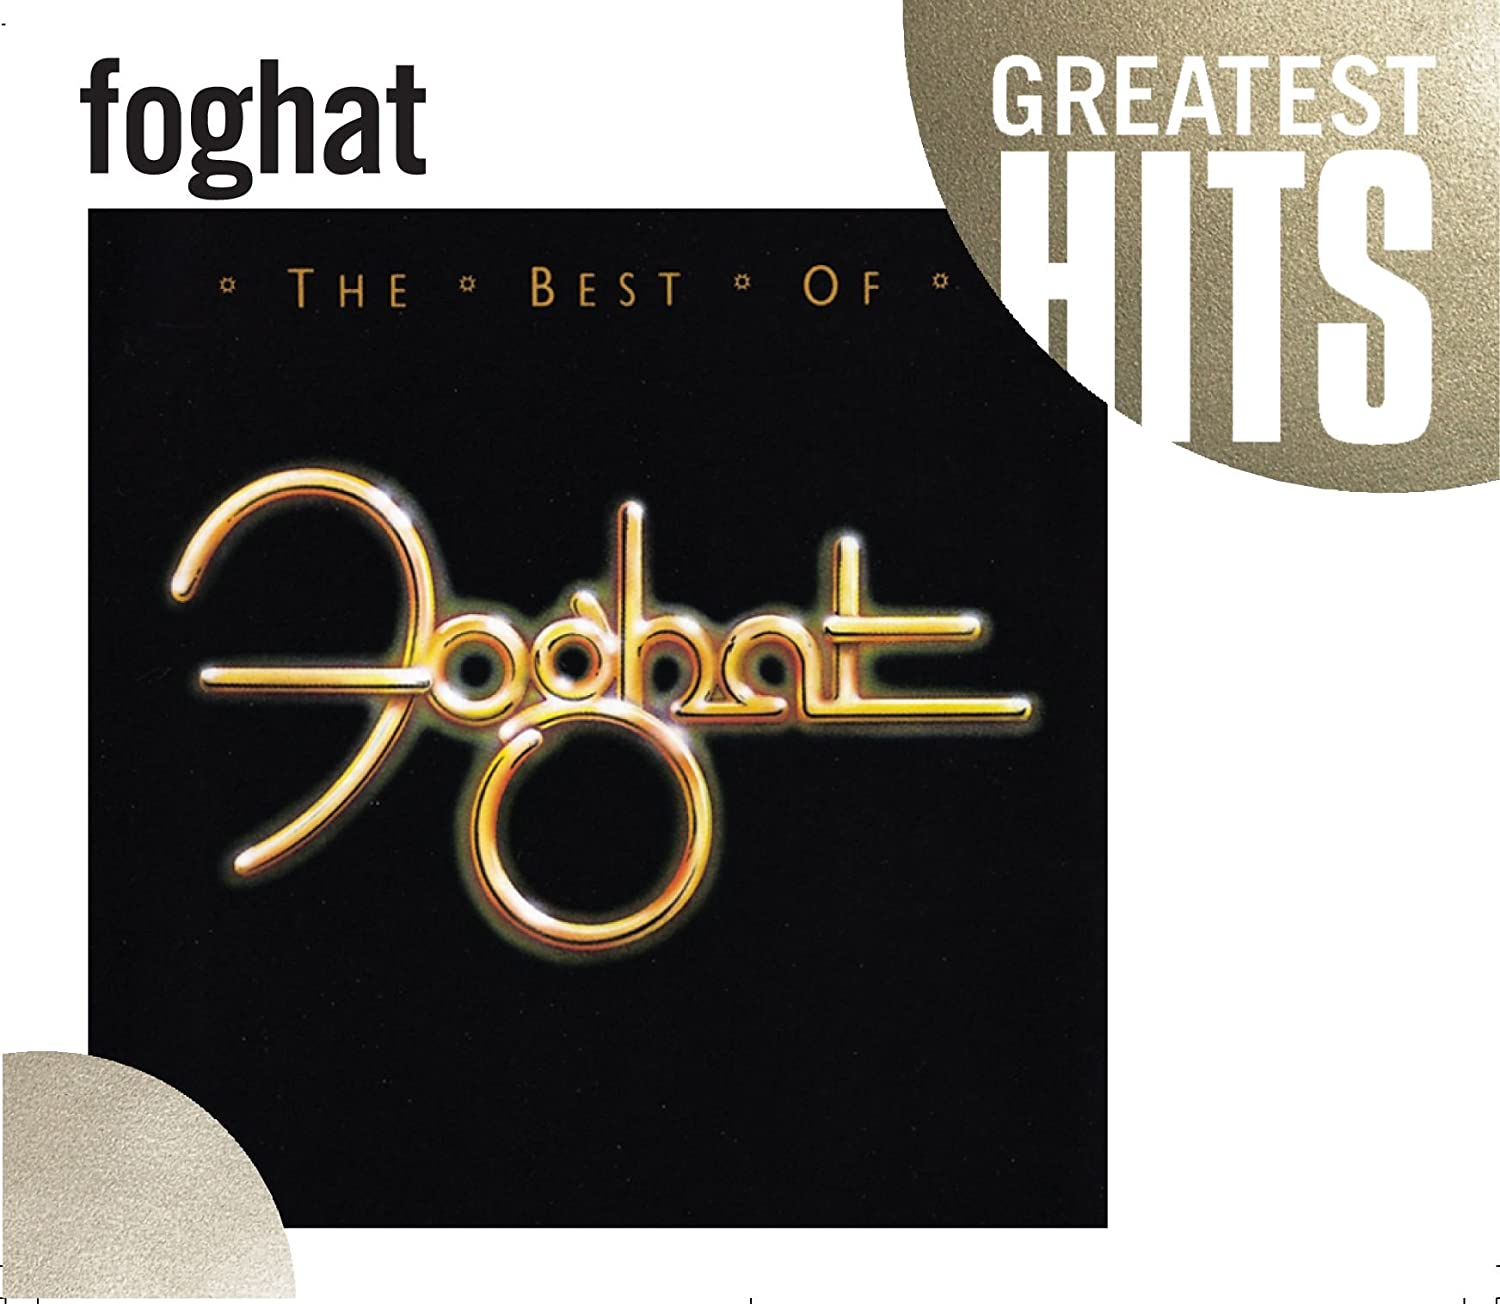 The Max 53% OFF Best 2021 autumn and winter new Foghat of